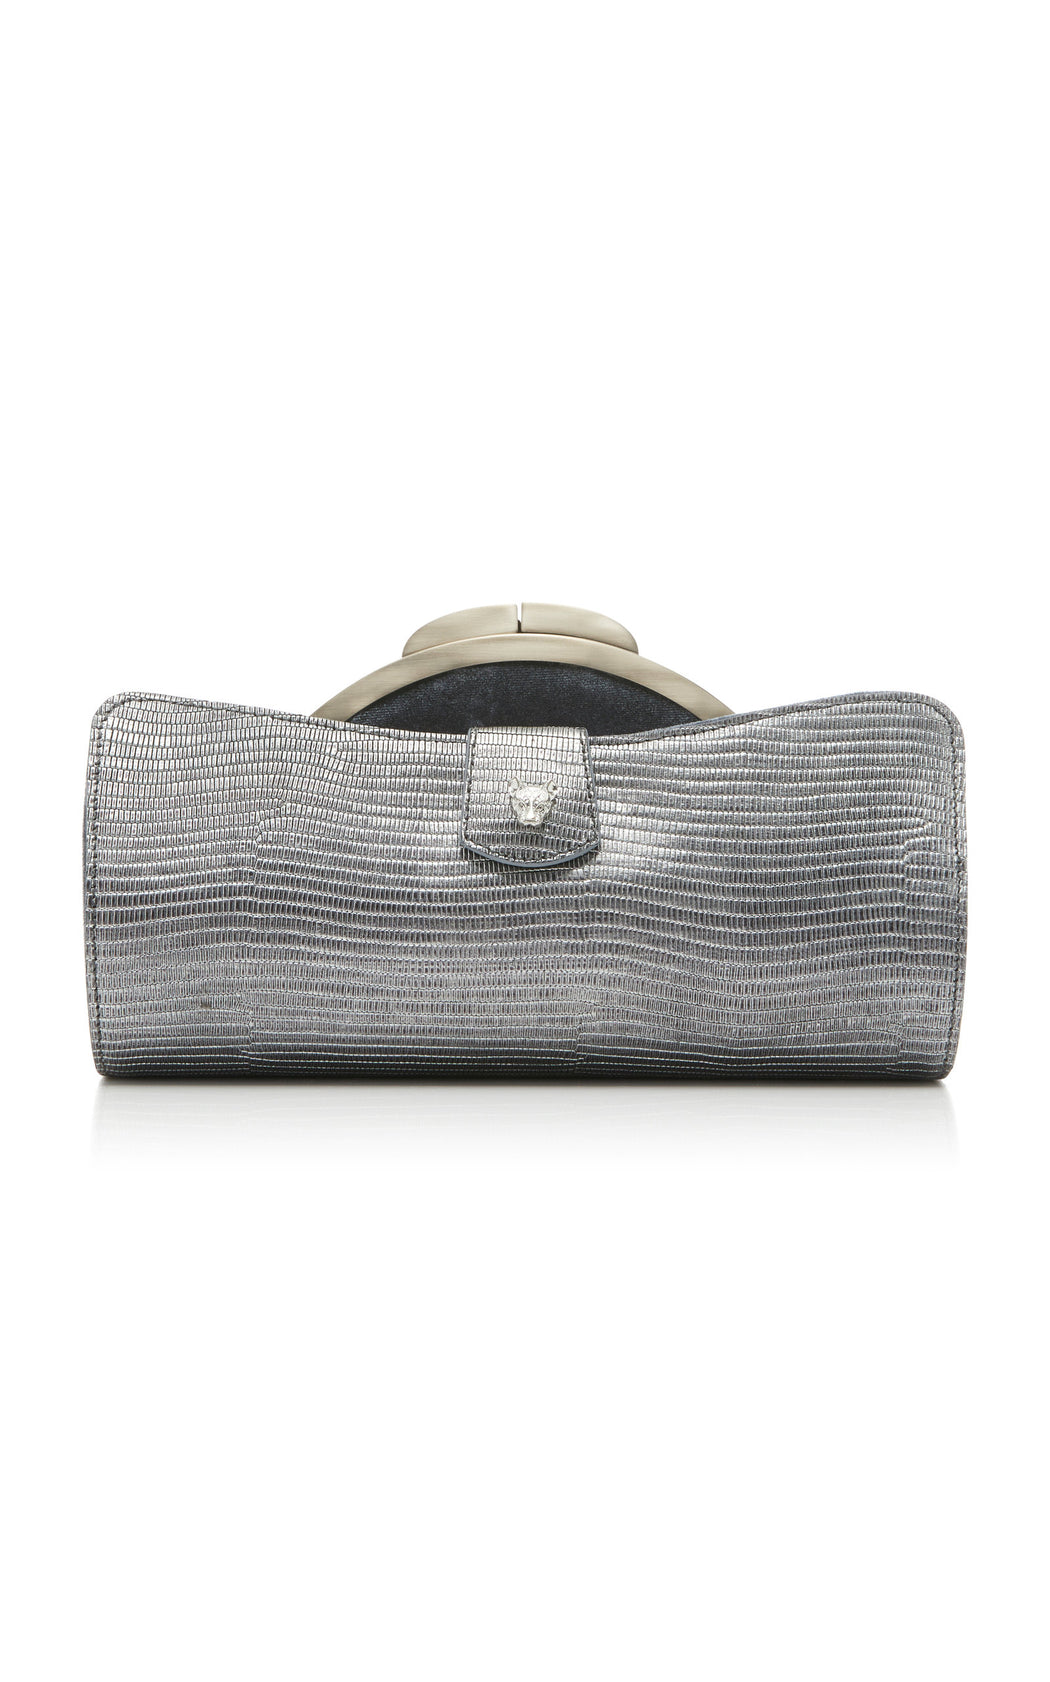 Two looks from one luxury handbag. Silver lizard-embossed calf leather outer layer reveals a rich gray velvet pouch with a gold-toned snap closure. Fits all size smart phones.